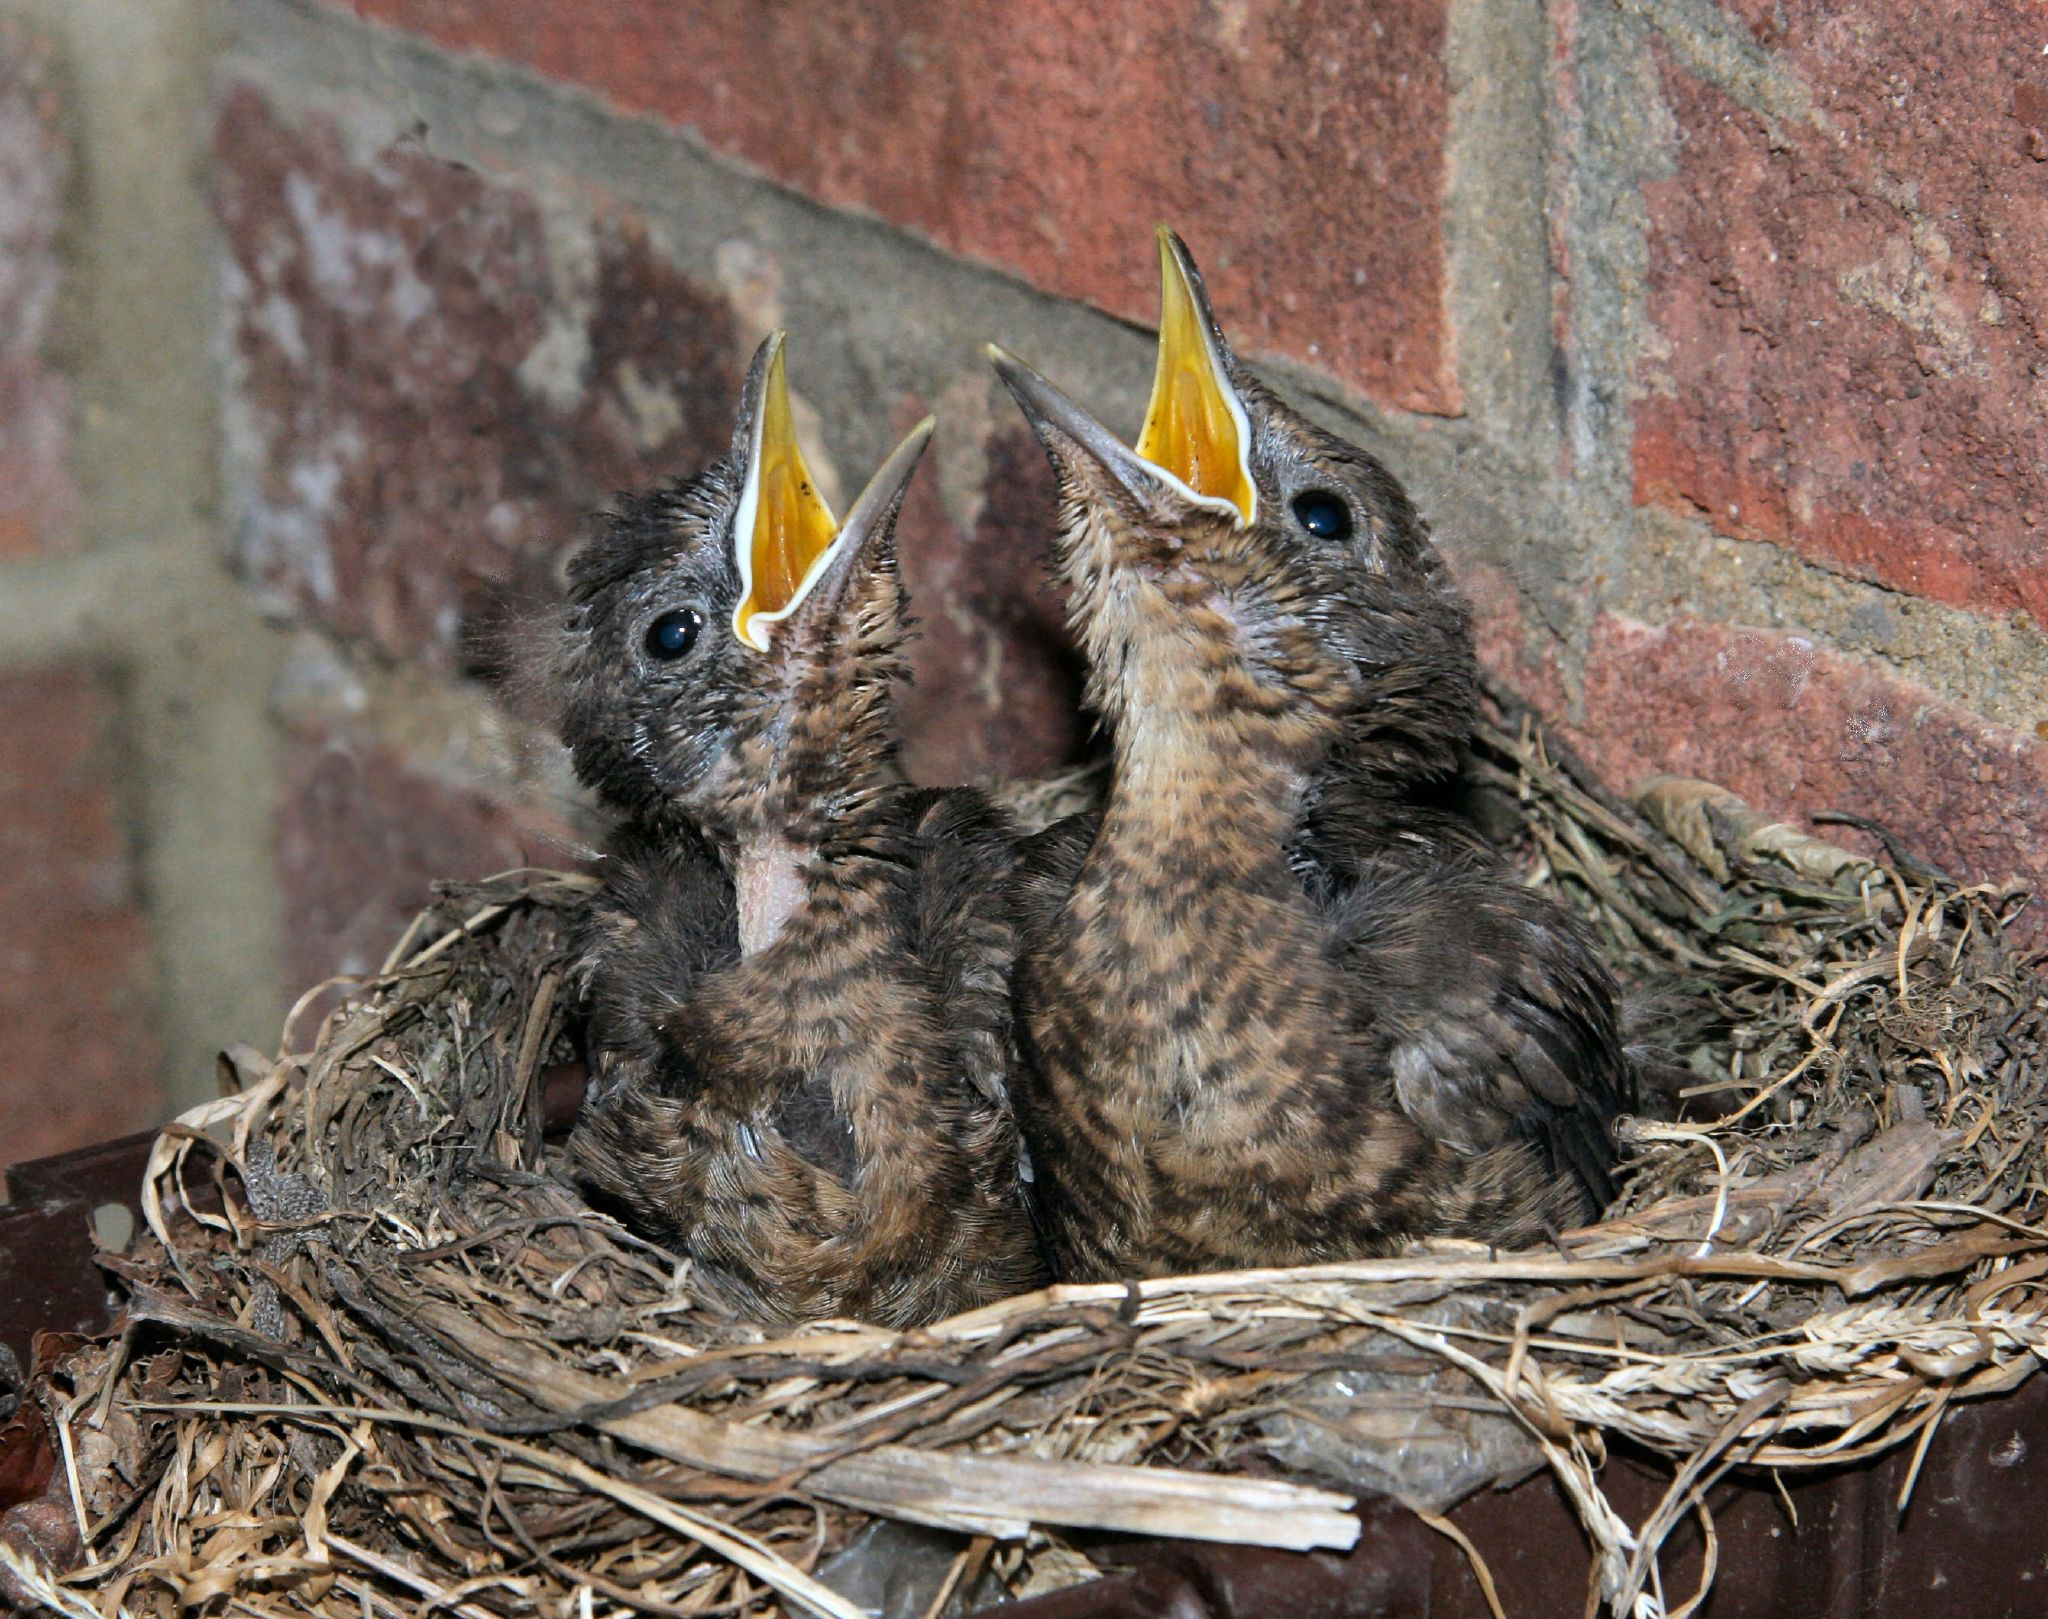 Oral Thrush: Symptoms, Causes, Treatments, and